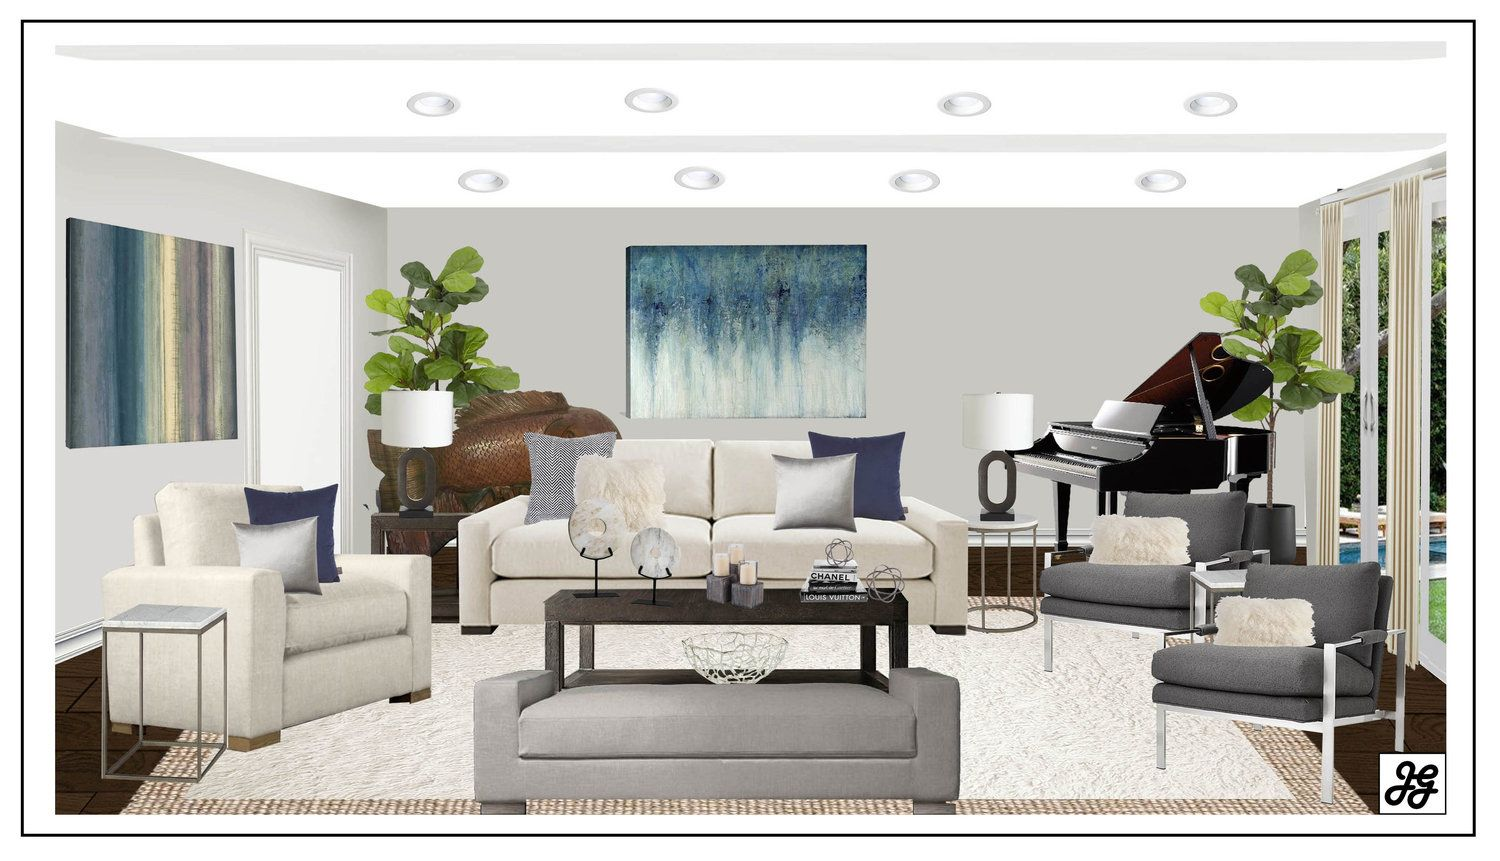 Living Room Design Online Best Contemporary Living Room Design Board Modern Farmhouse Living Room Design Decoration